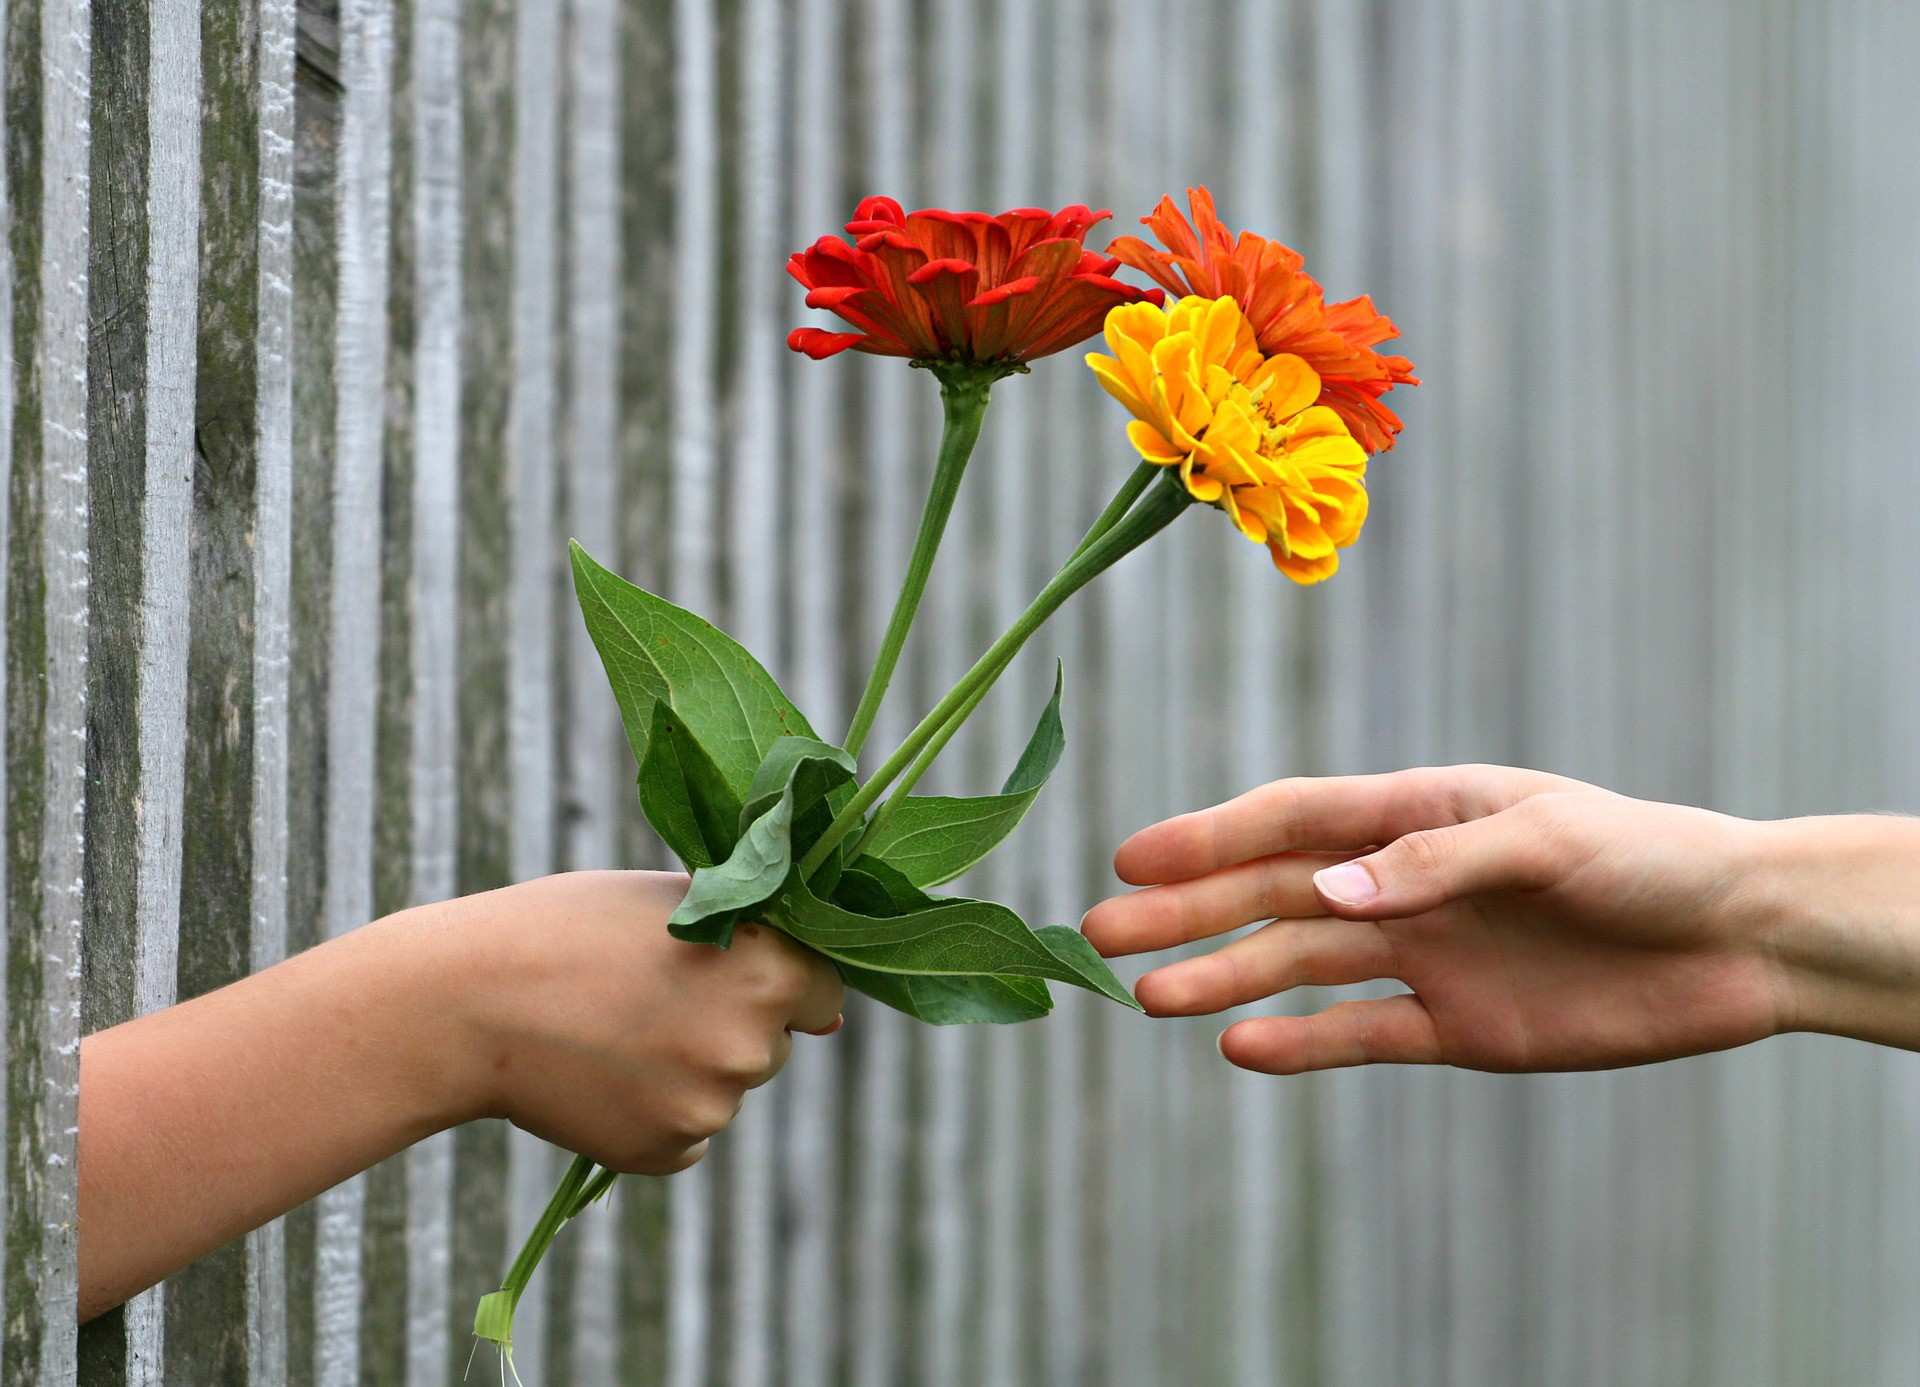 Hand reaching through a corrugated steel fence handing a small bouquet of flowers to another hand.